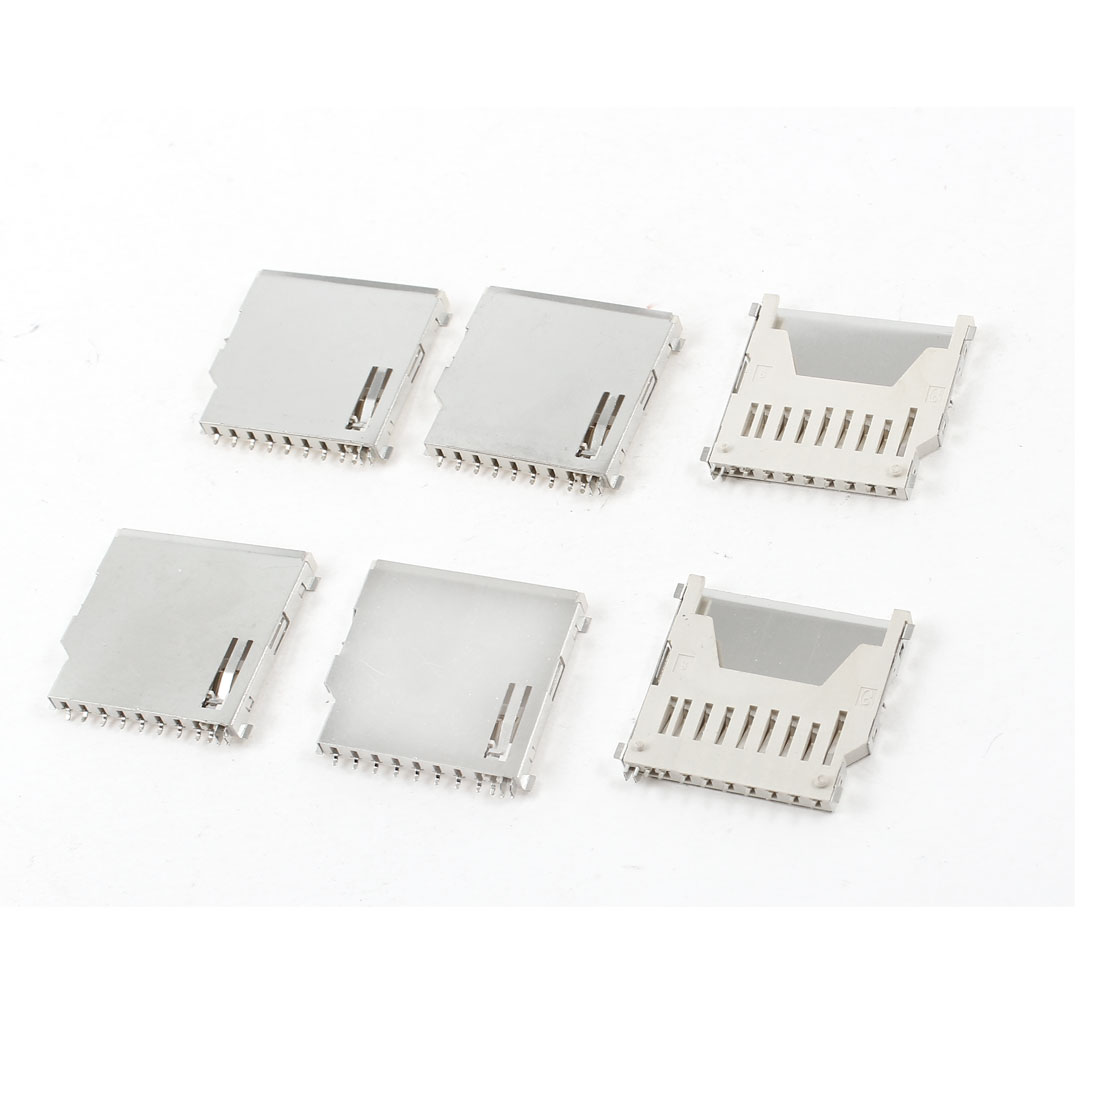 6 Pcs Stainless Steel SD Memory Card Sockets DIY Connectors Slot